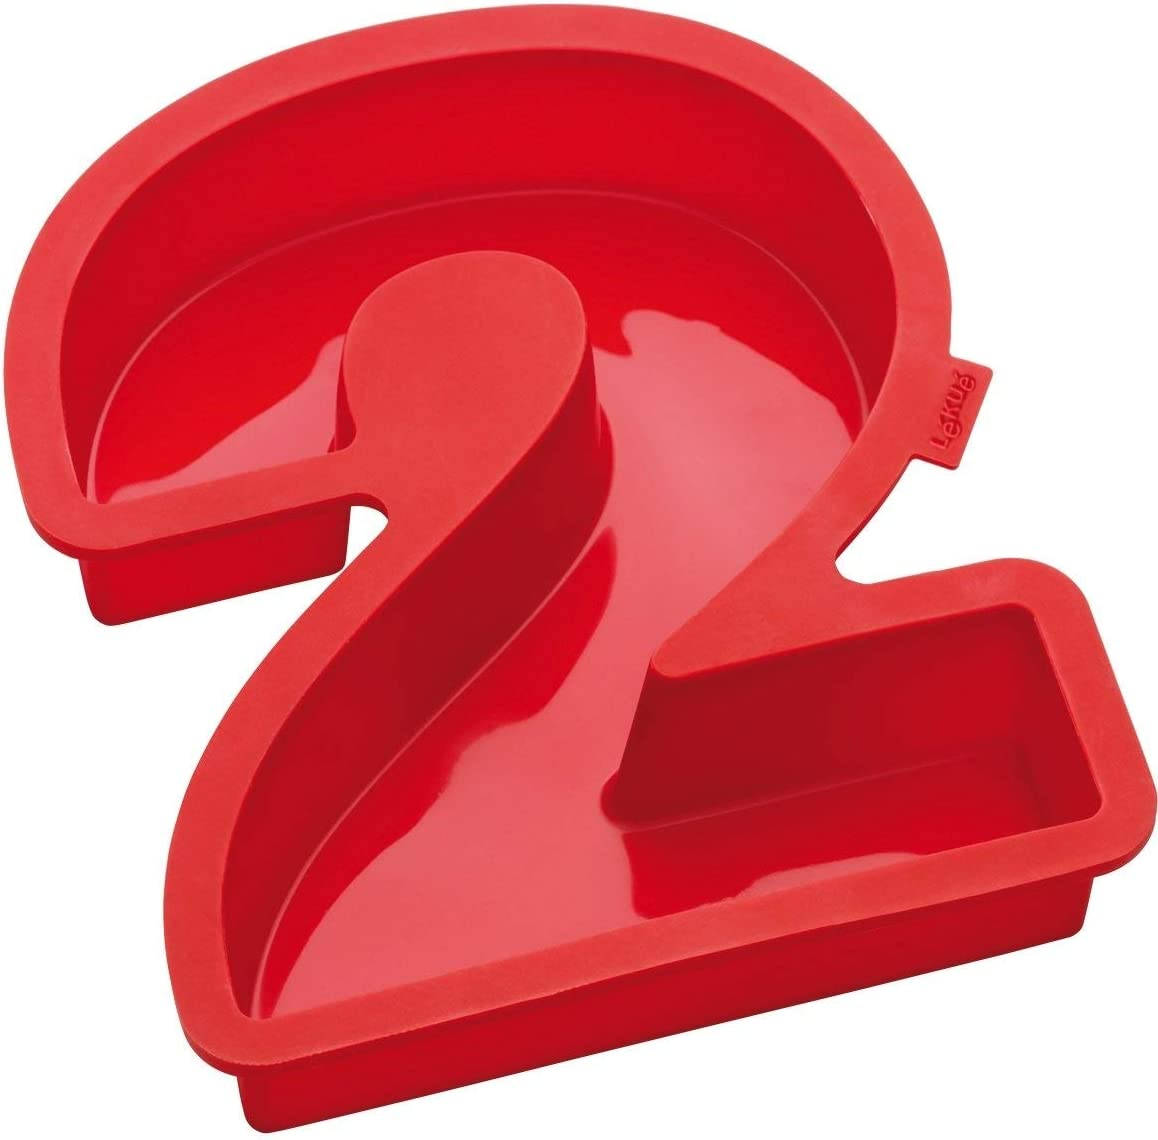 Lekue Number 2 Cake Mold, Red